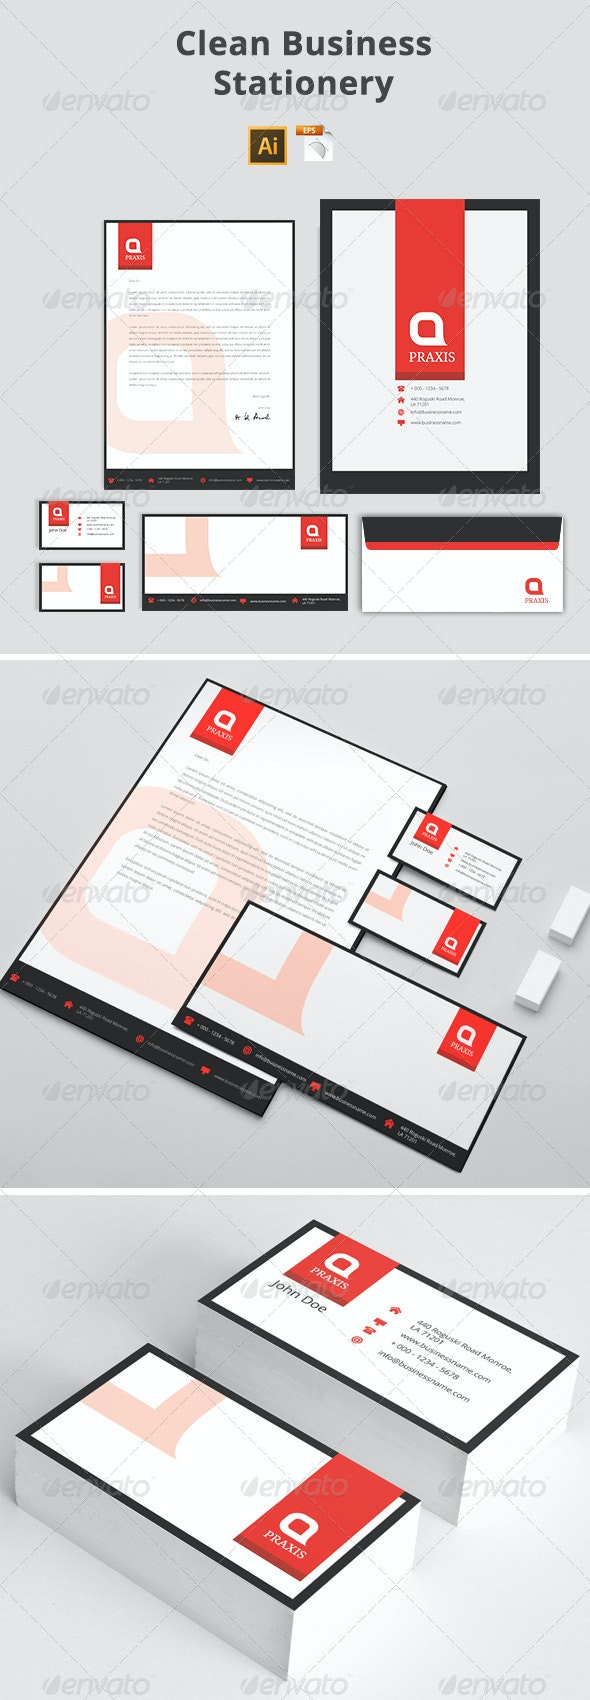 Clean Business Stationery - Stationery Print Templates